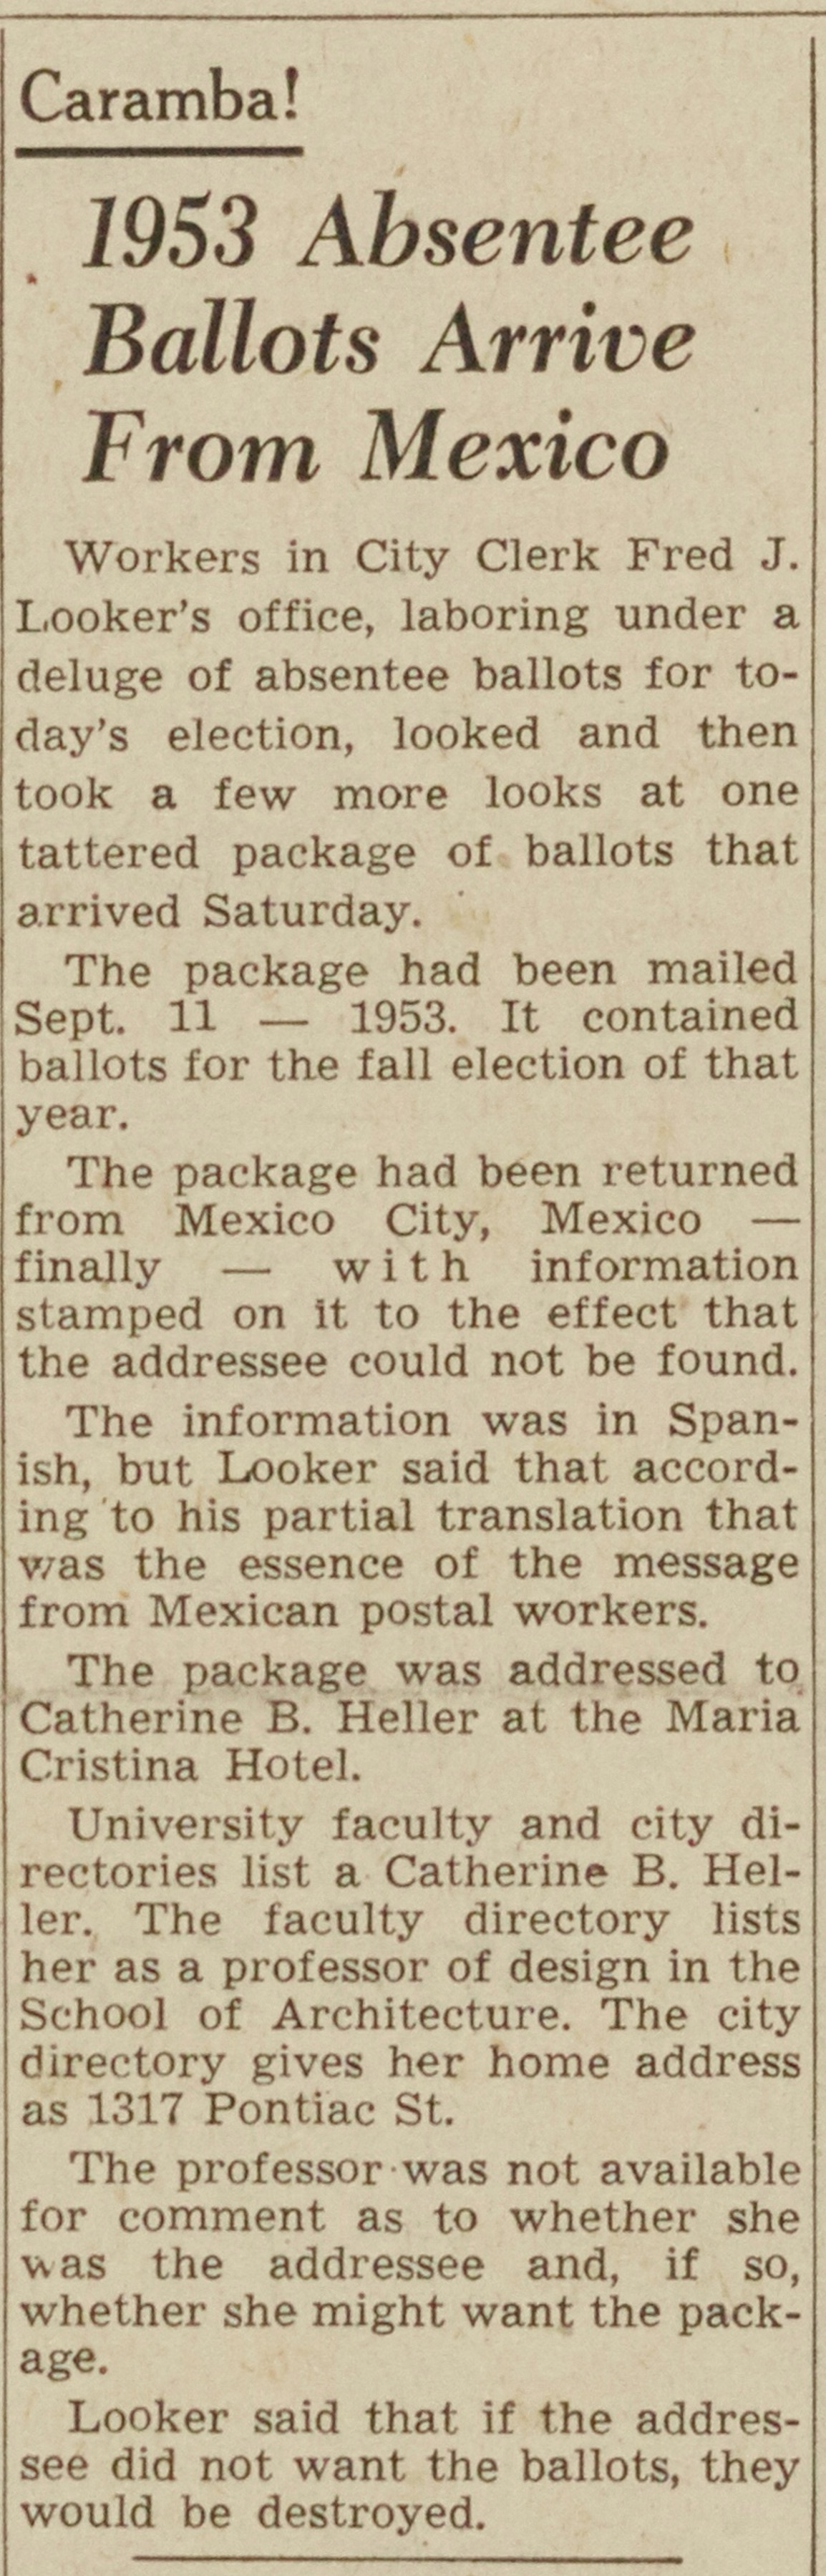 1953 Absentee Ballots Arrive From Mexico image